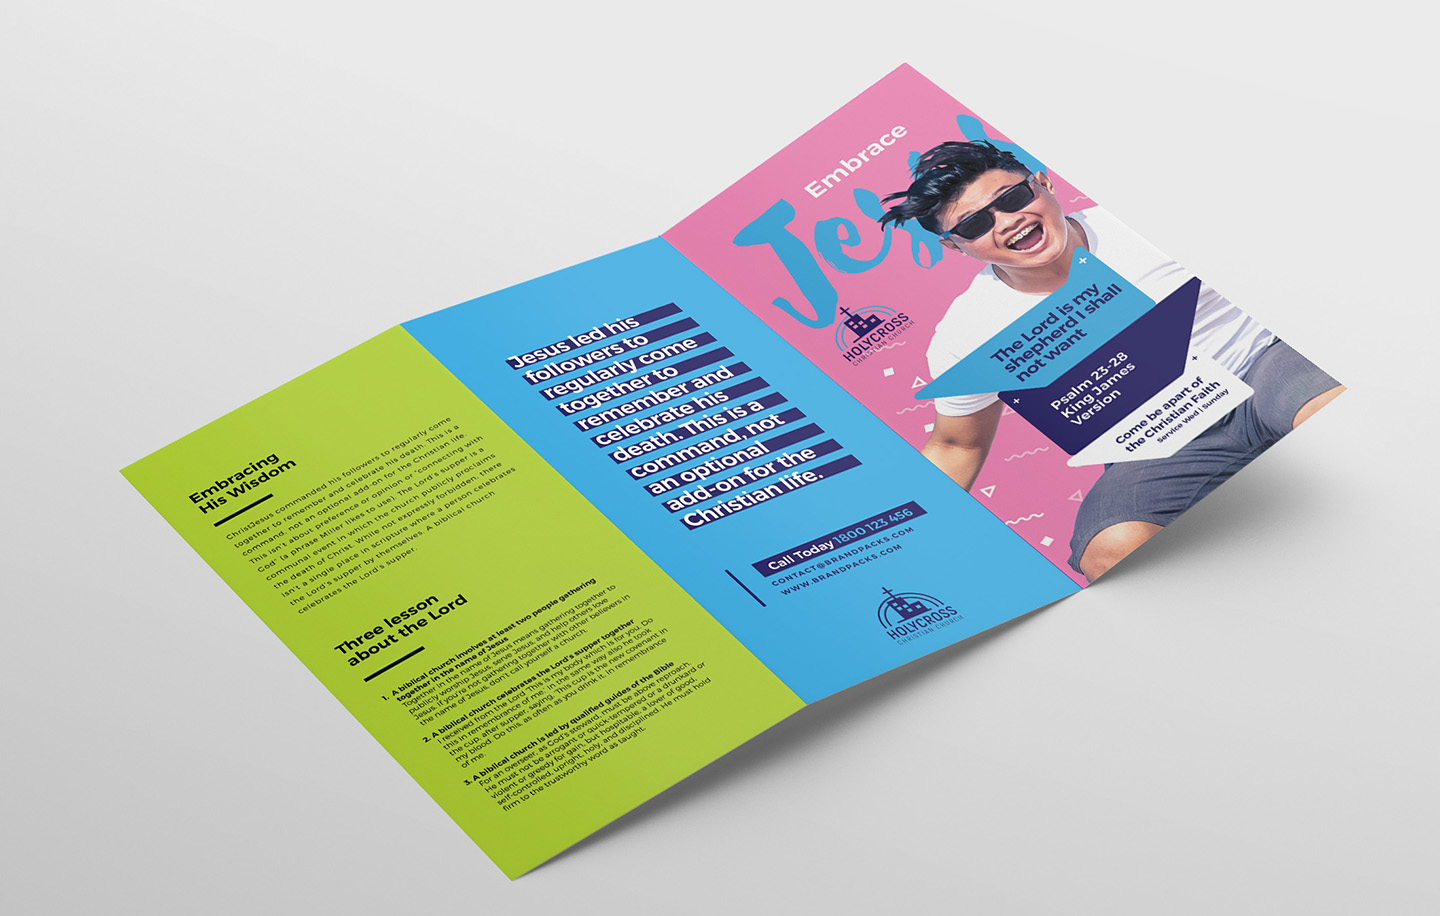 Easter Service Tri-Fold Brochure Template example image 4